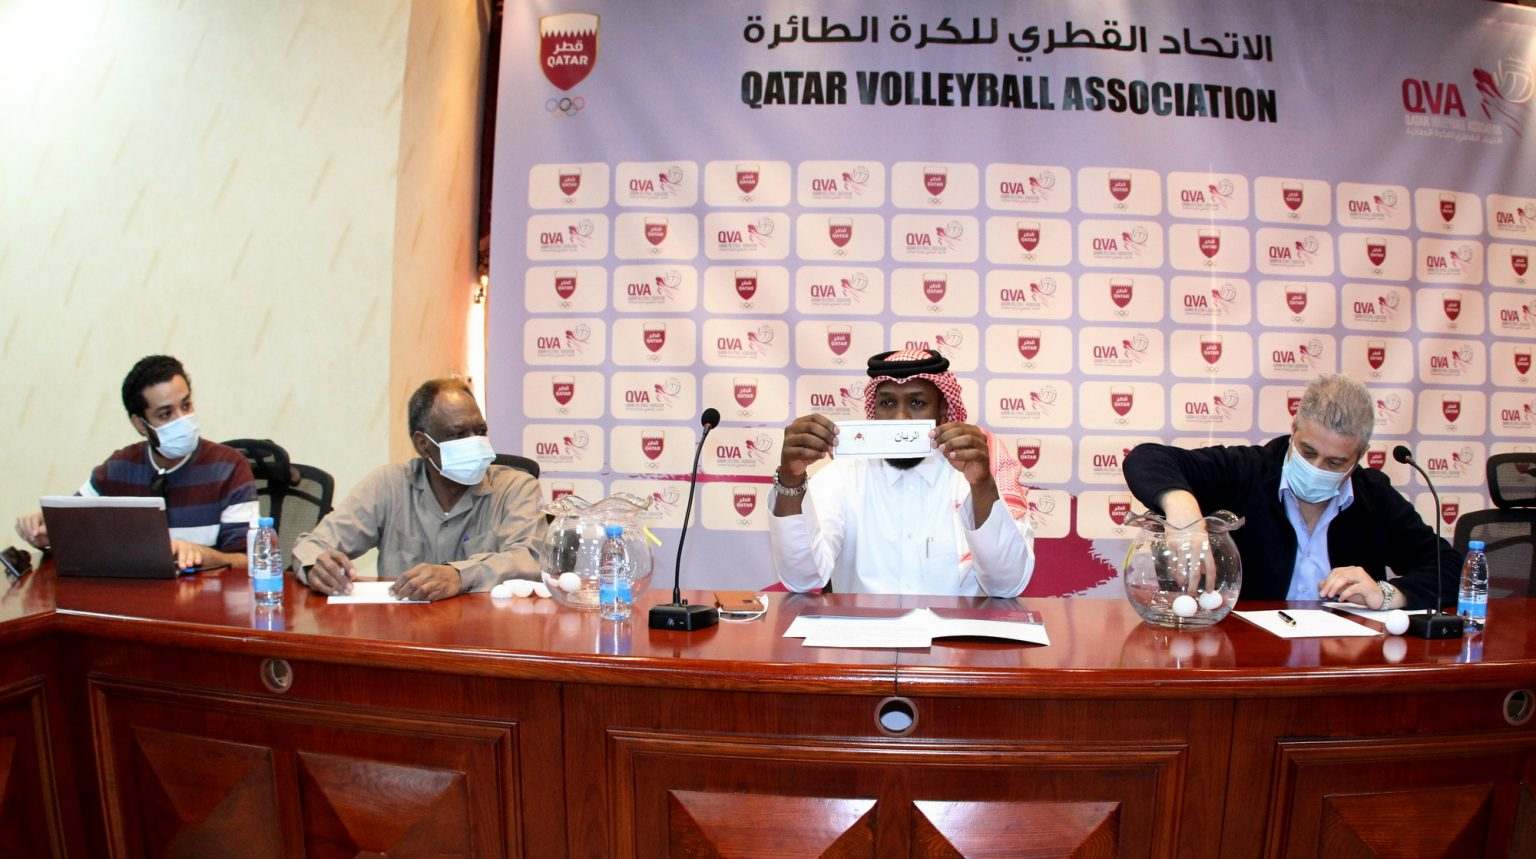 QVA CONDUCTS AMIR CUP QUALIFICATIONS DRAW